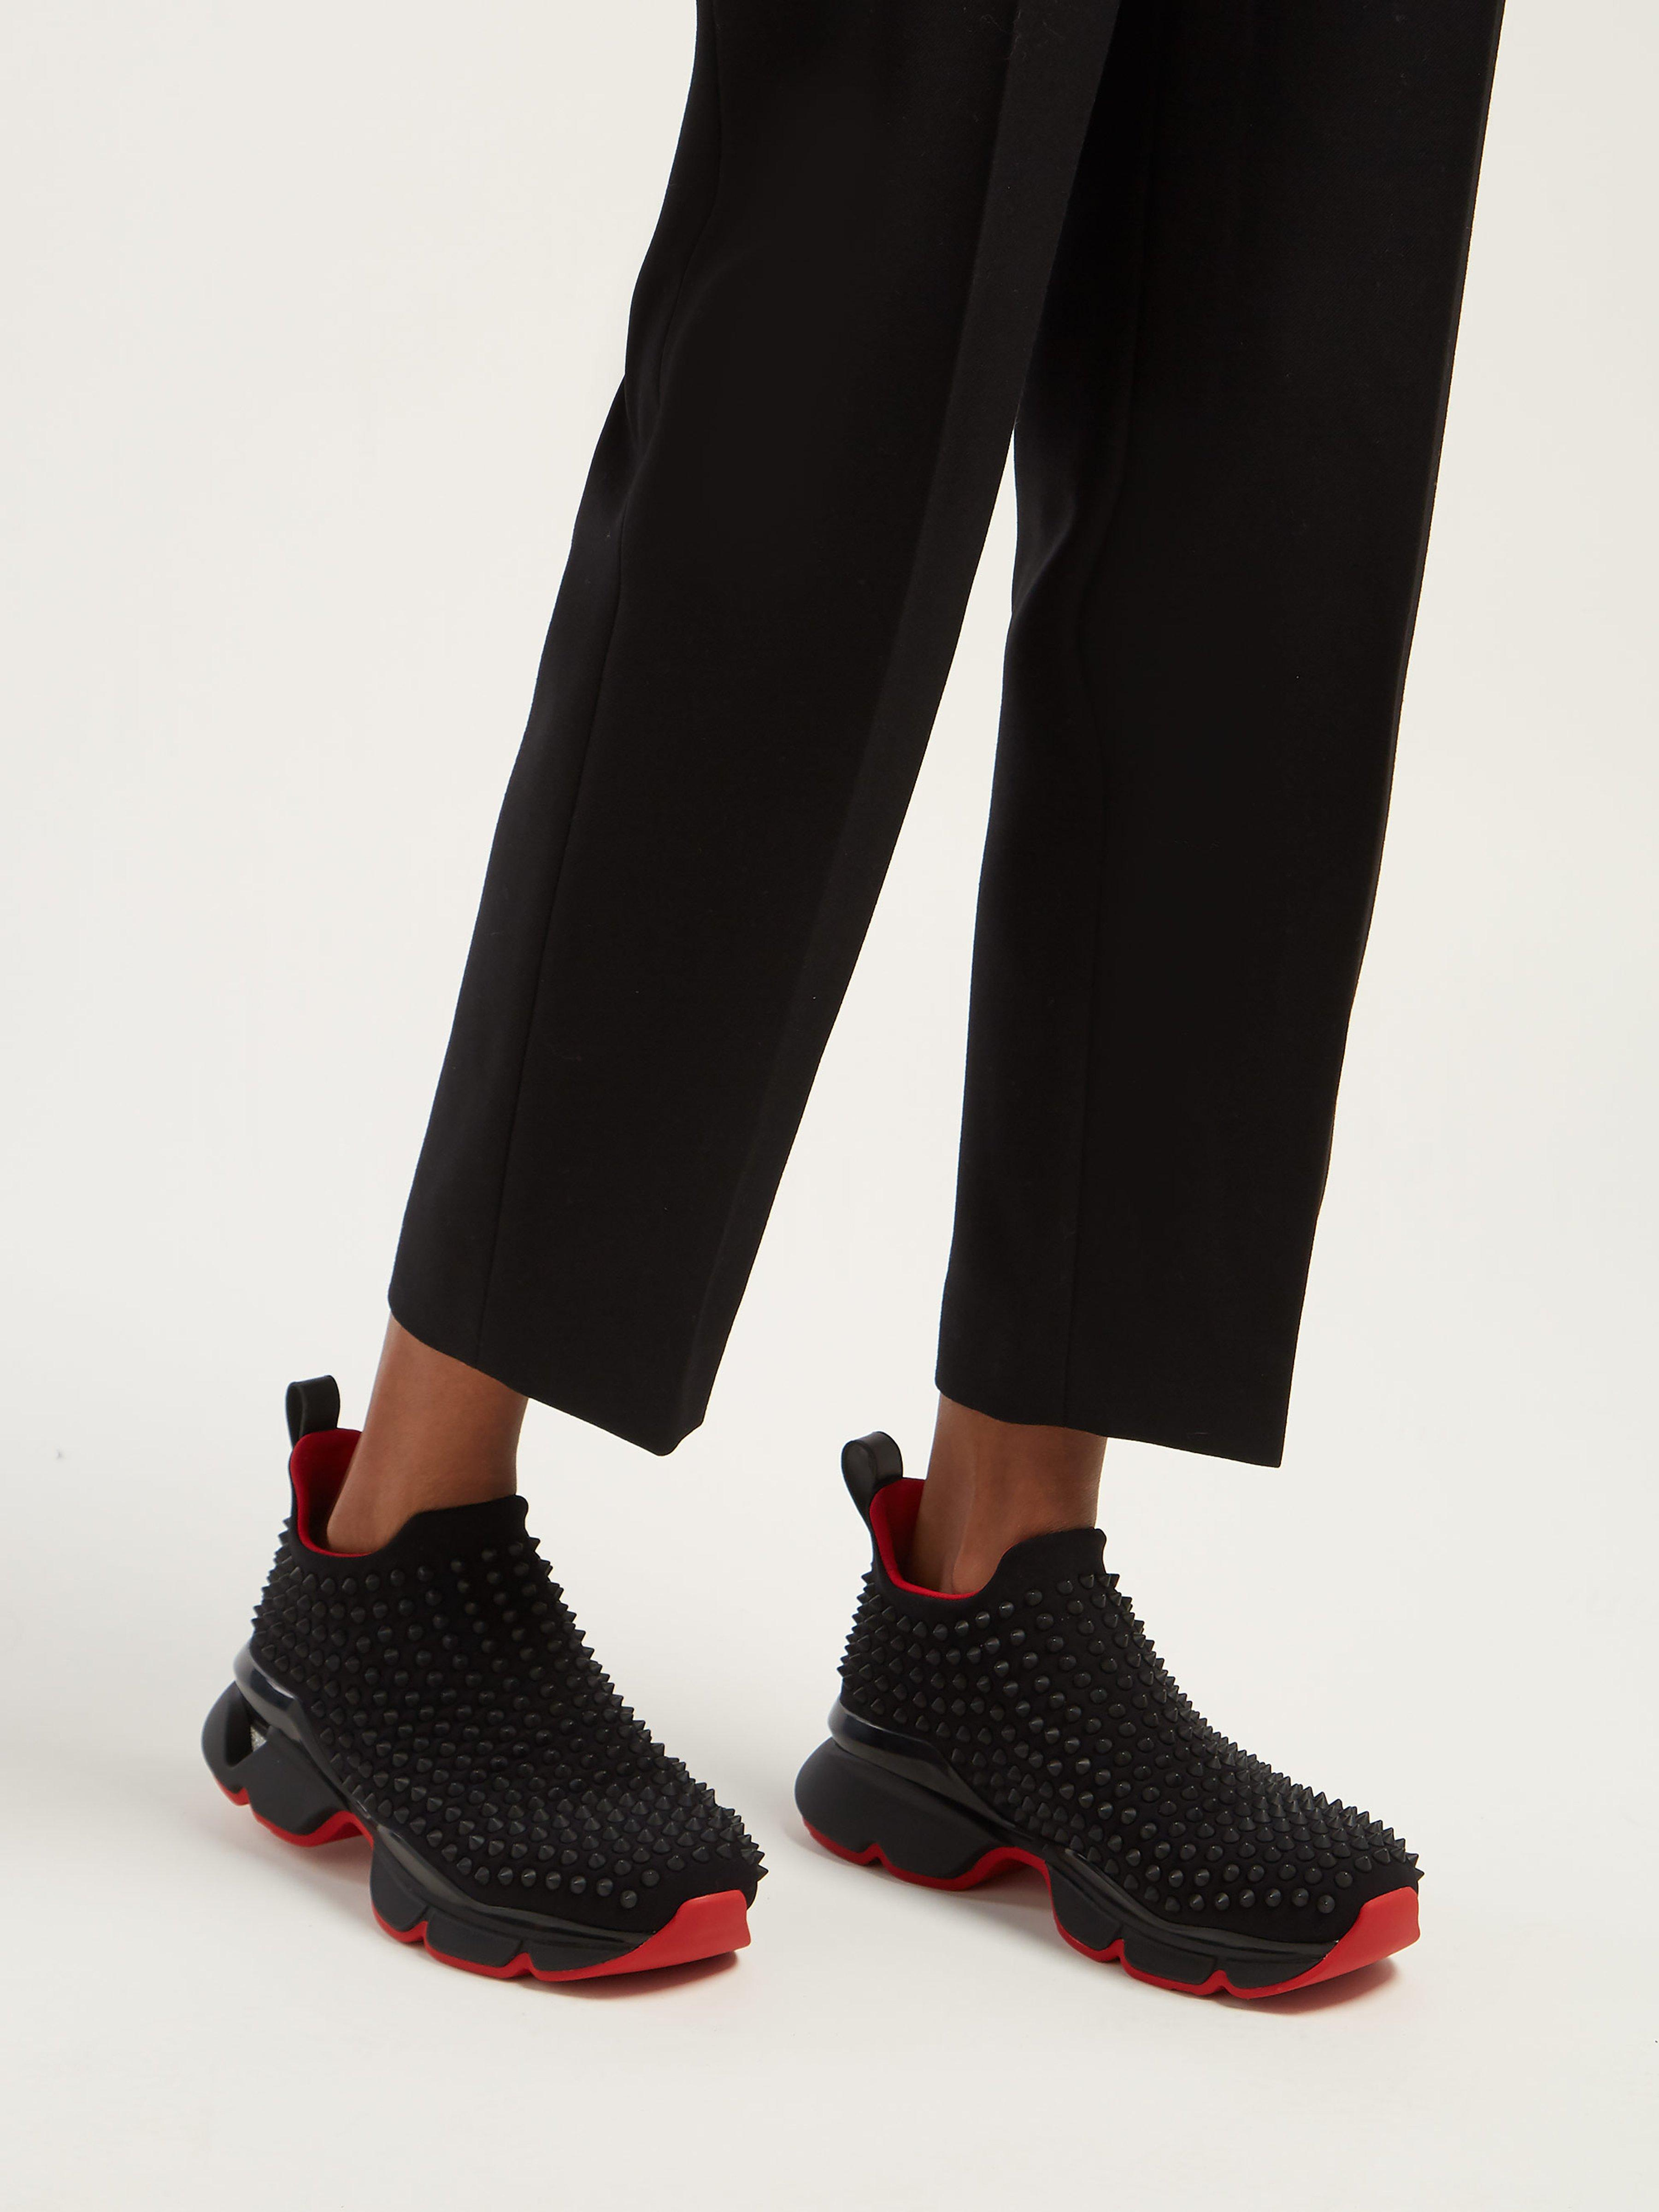 86c7fd09d37a Christian Louboutin - Black Spike Sock Studded Low Top Trainers - Lyst.  View fullscreen